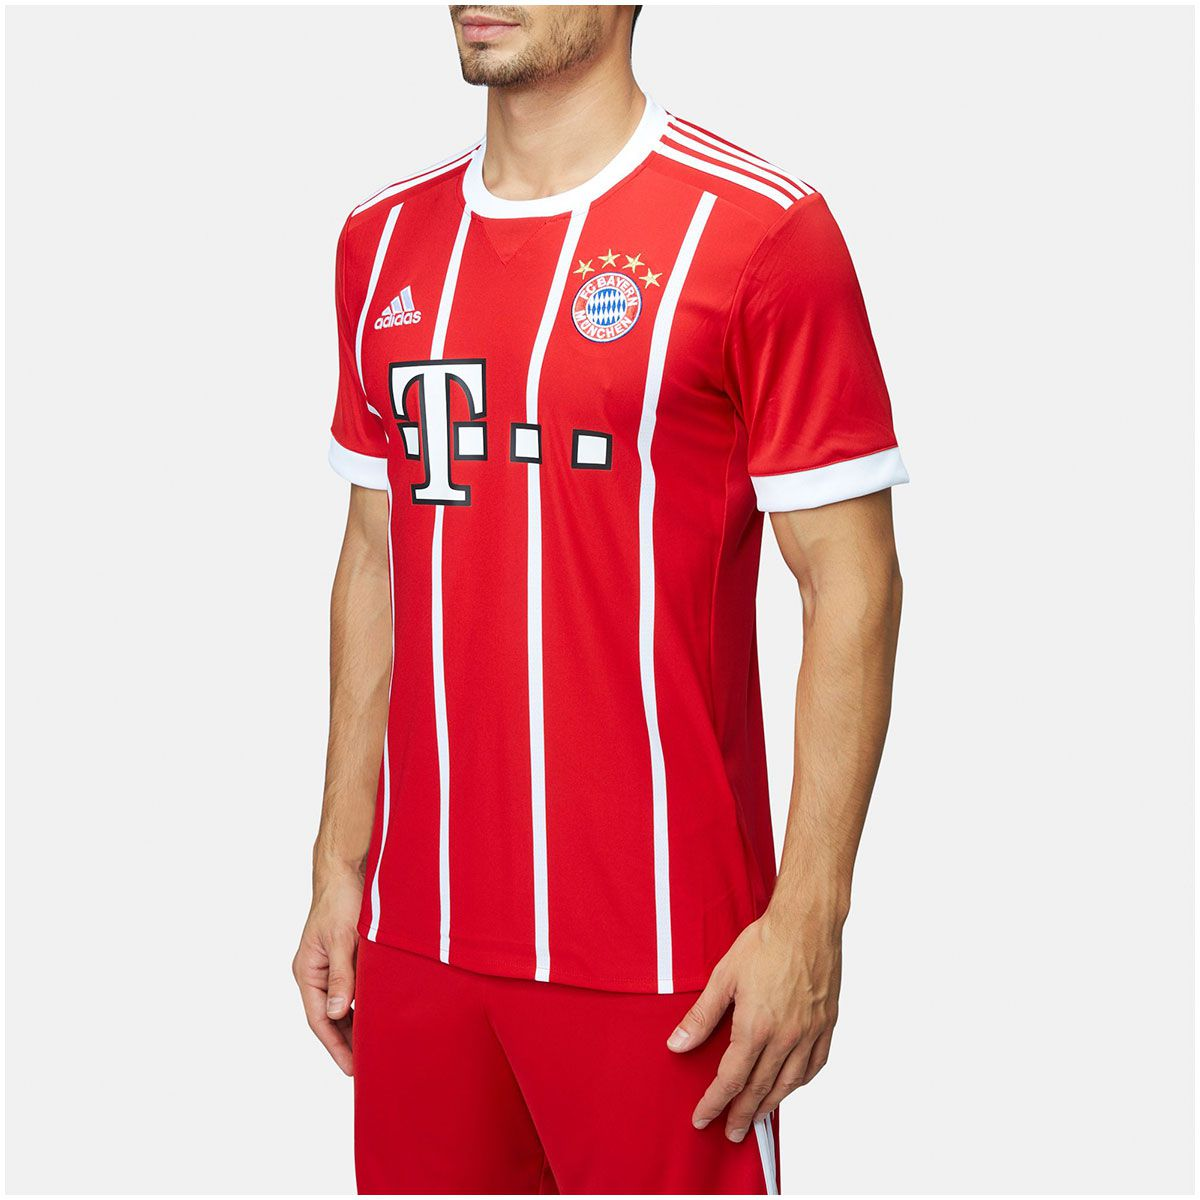 11d3226b4 Camisa Bayern de Munique Home Adidas 2017